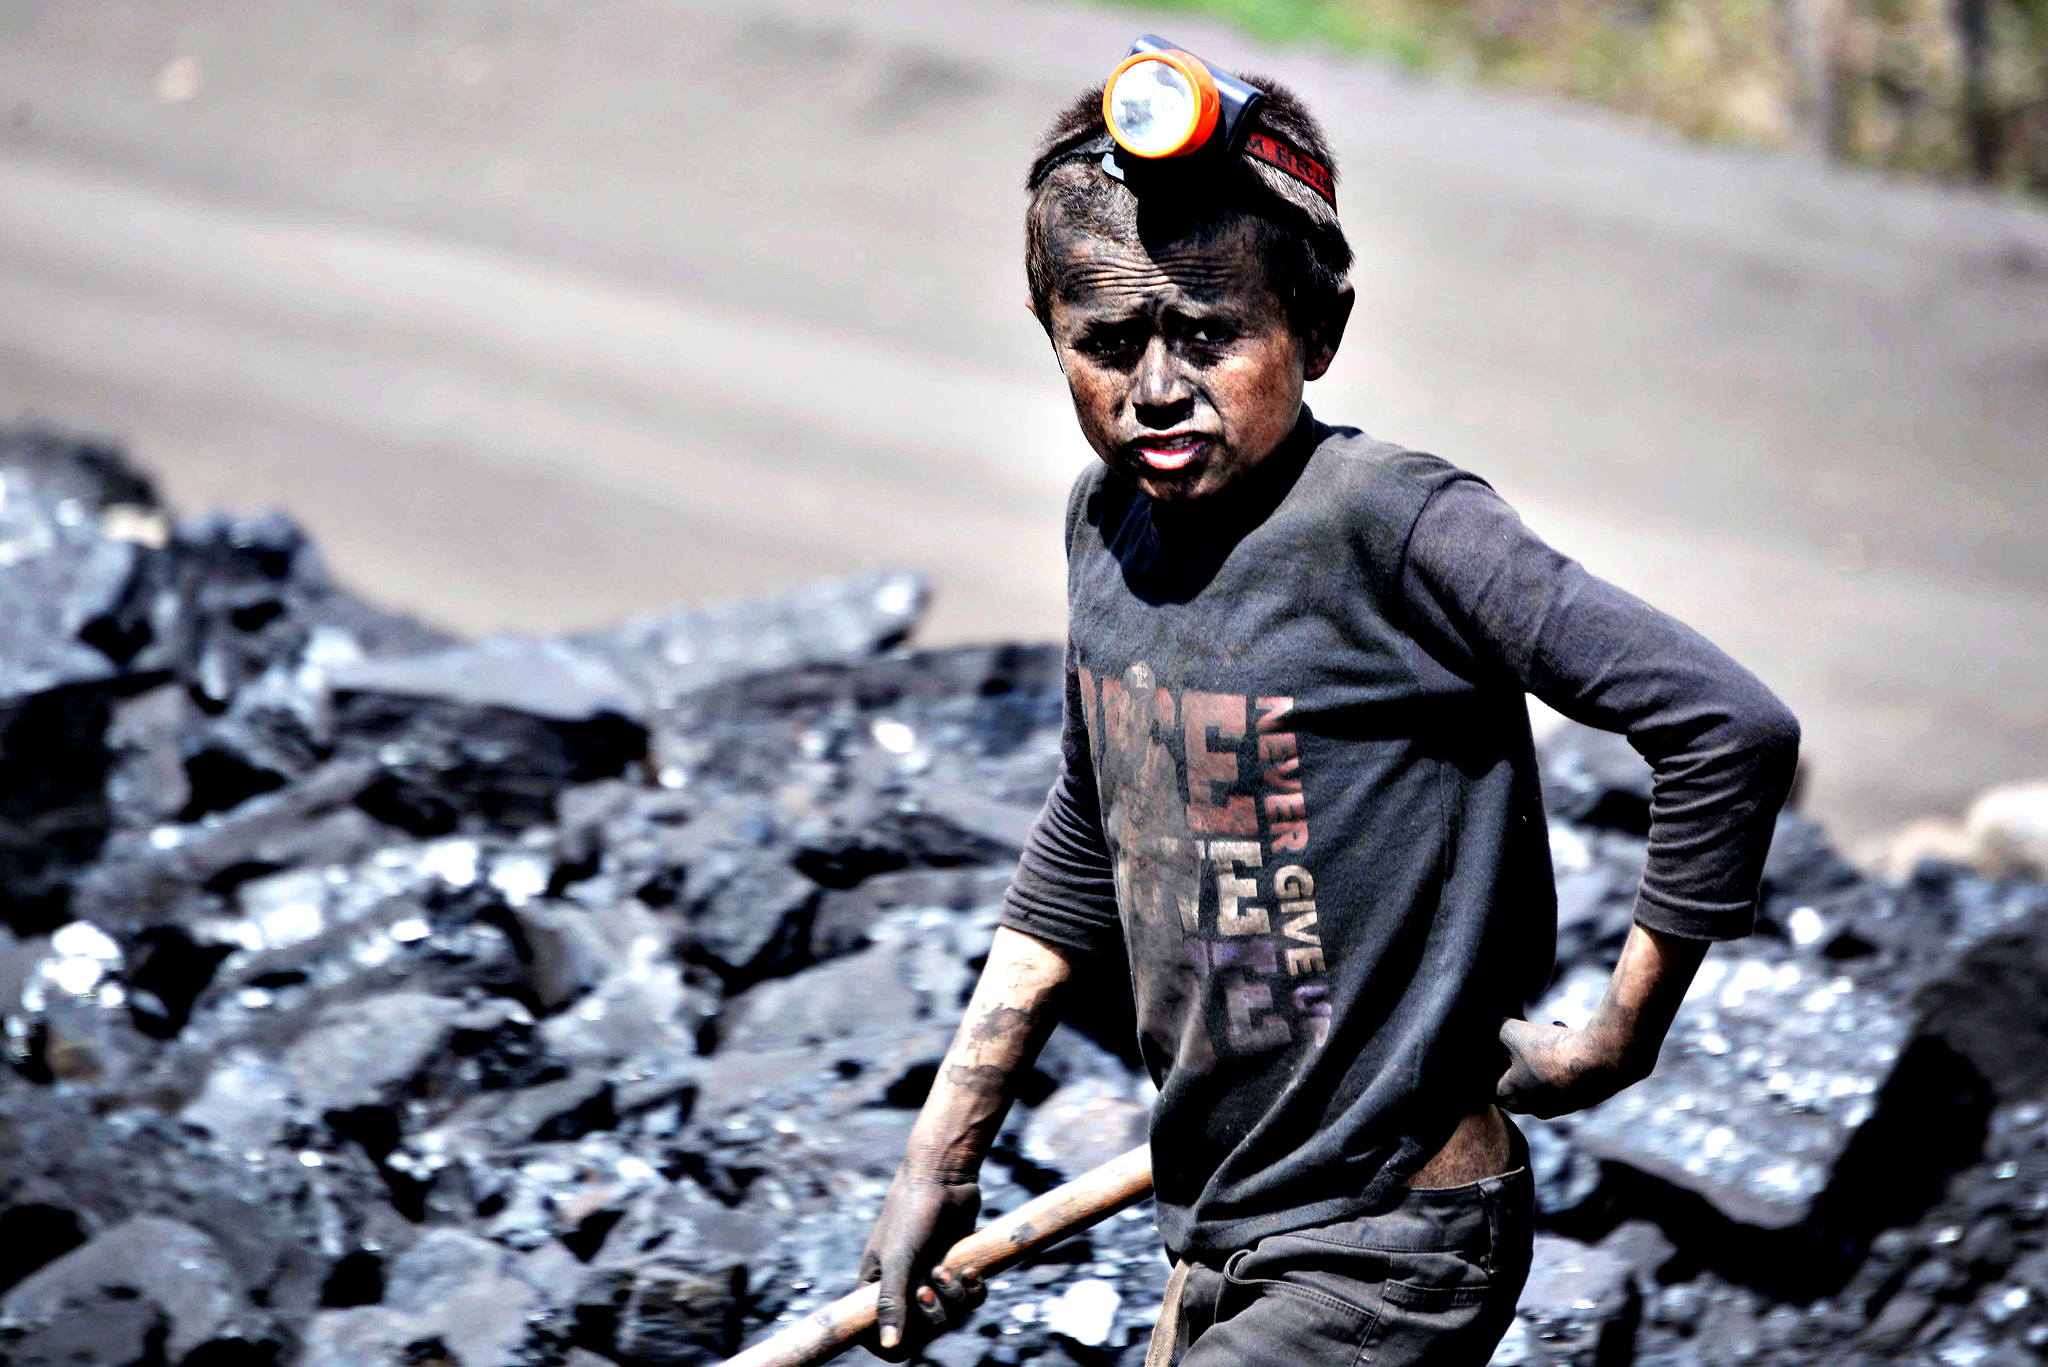 An Afghan child looks on as he works at a coal mine which collapsed on Wednesday killing some 40 miners and trapping an unknown number of others in the Dar-i- Suf district of Samangan province, some 200 kms from Mazar-e-Sharif